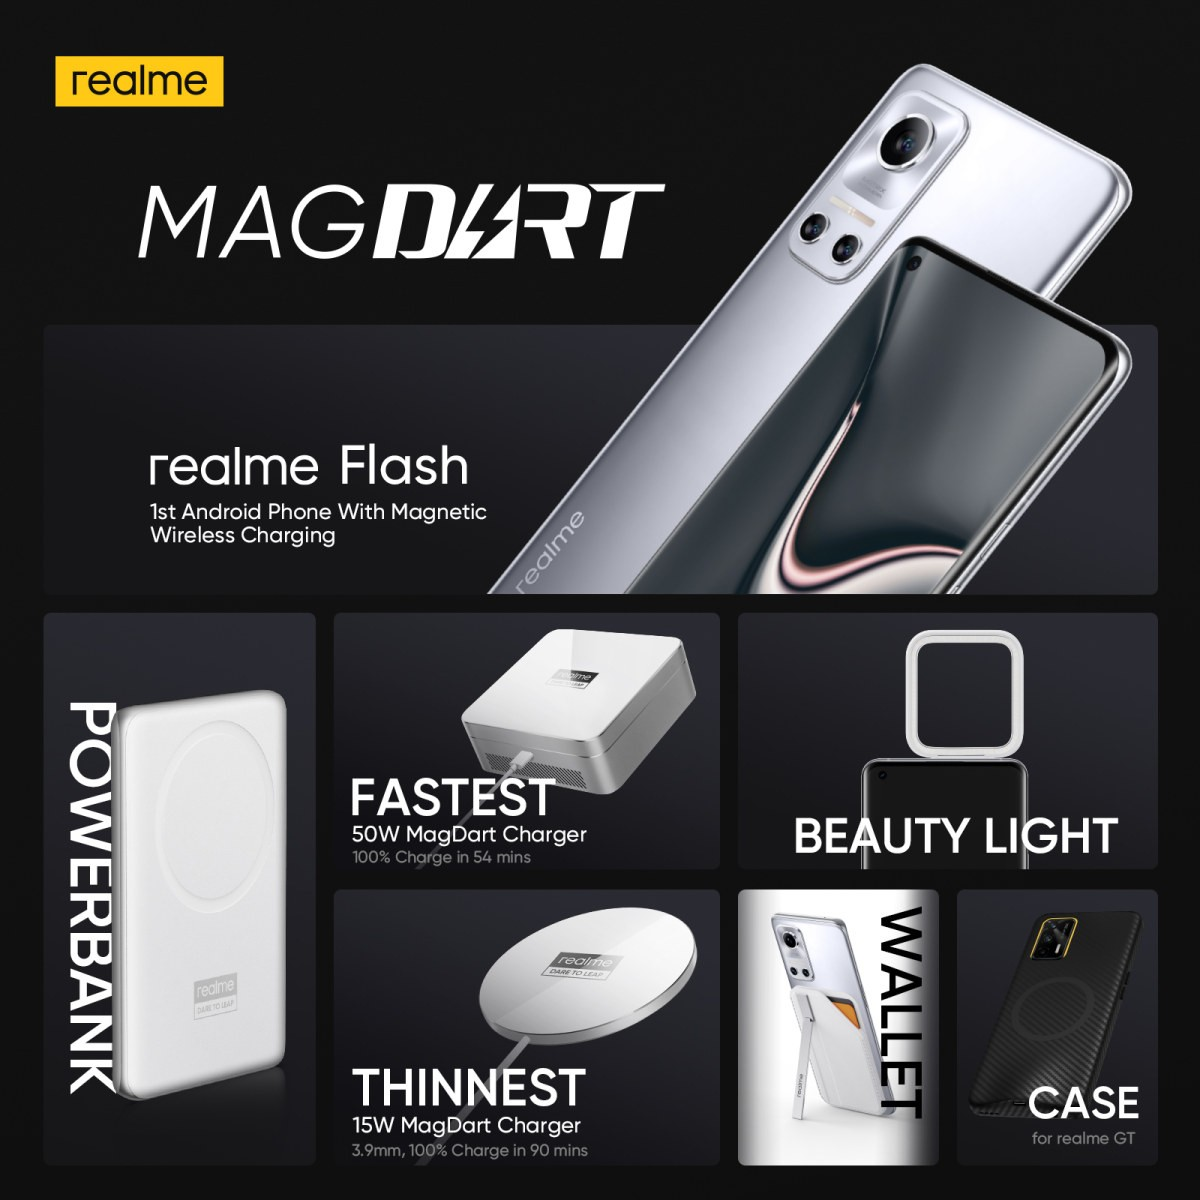 Realme unveils the MagDart ecosystem: 50W and 15W chargers, power bank and more